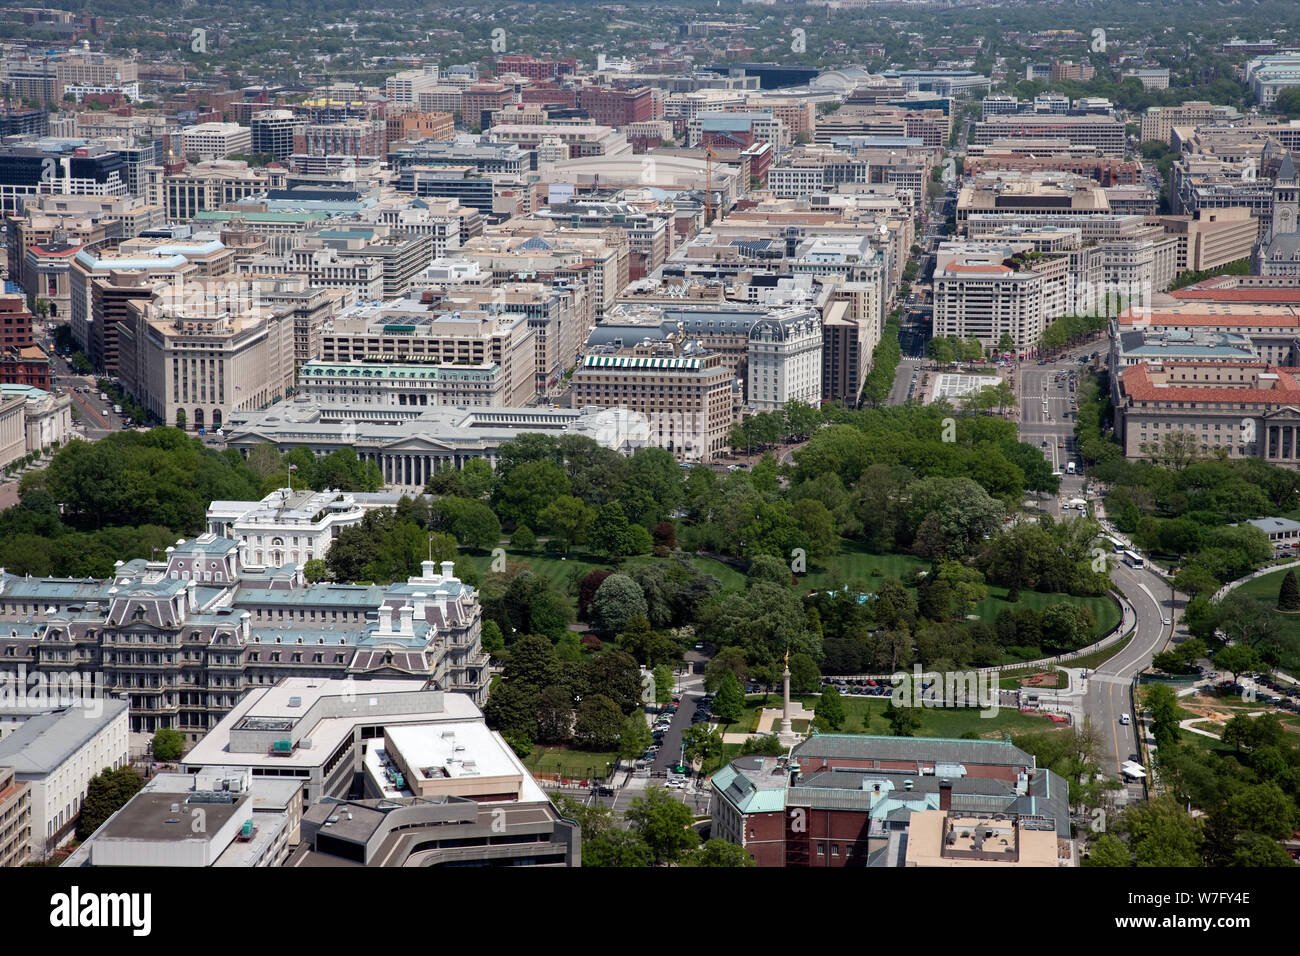 Sensational Aerial View Of The White House Lawn With The City Of Download Free Architecture Designs Scobabritishbridgeorg